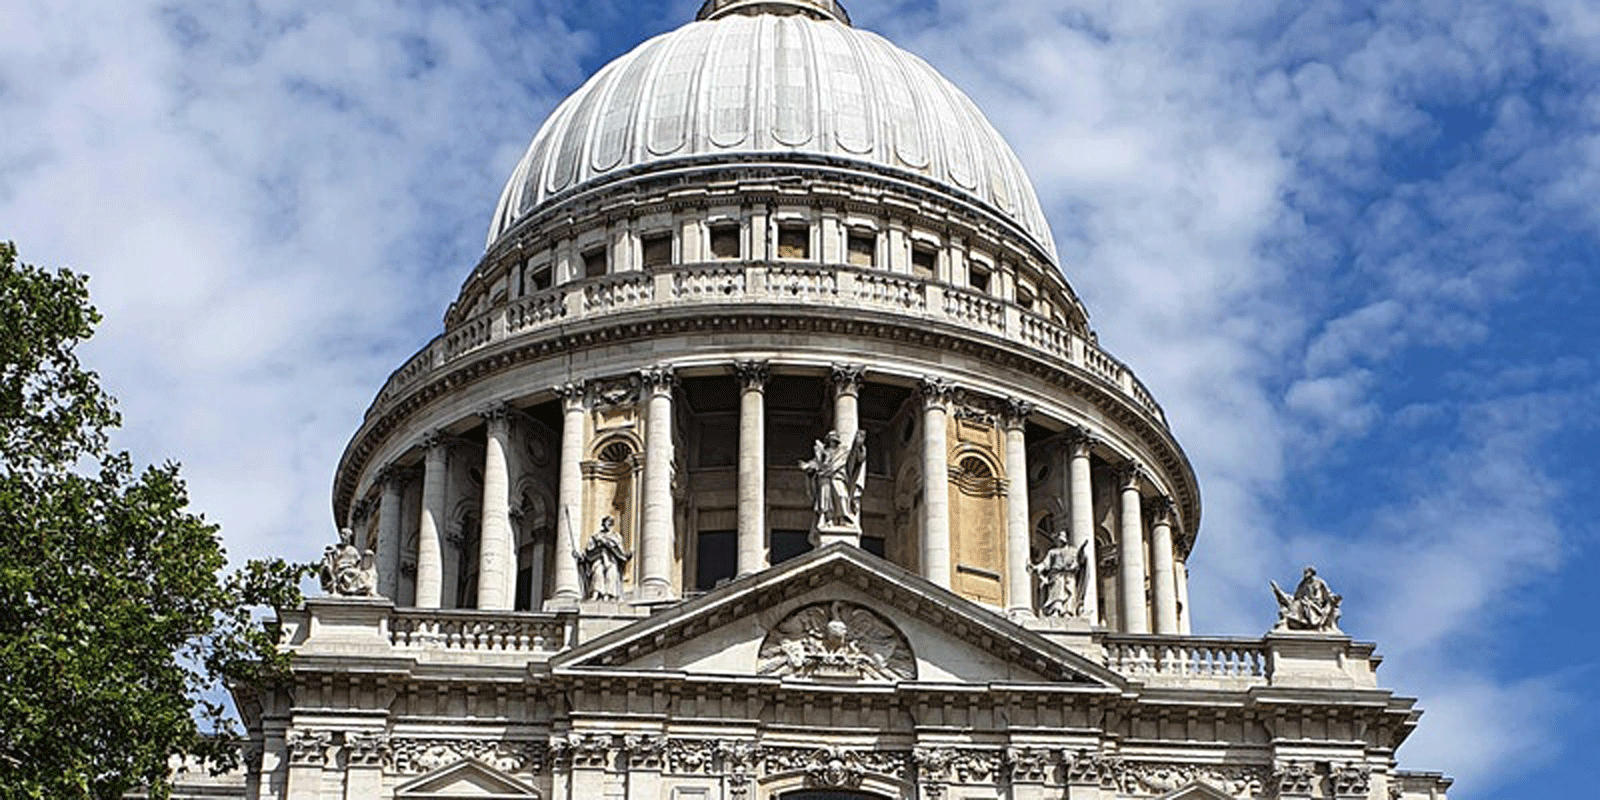 Virtual London Tour – St Paul's Cathedral